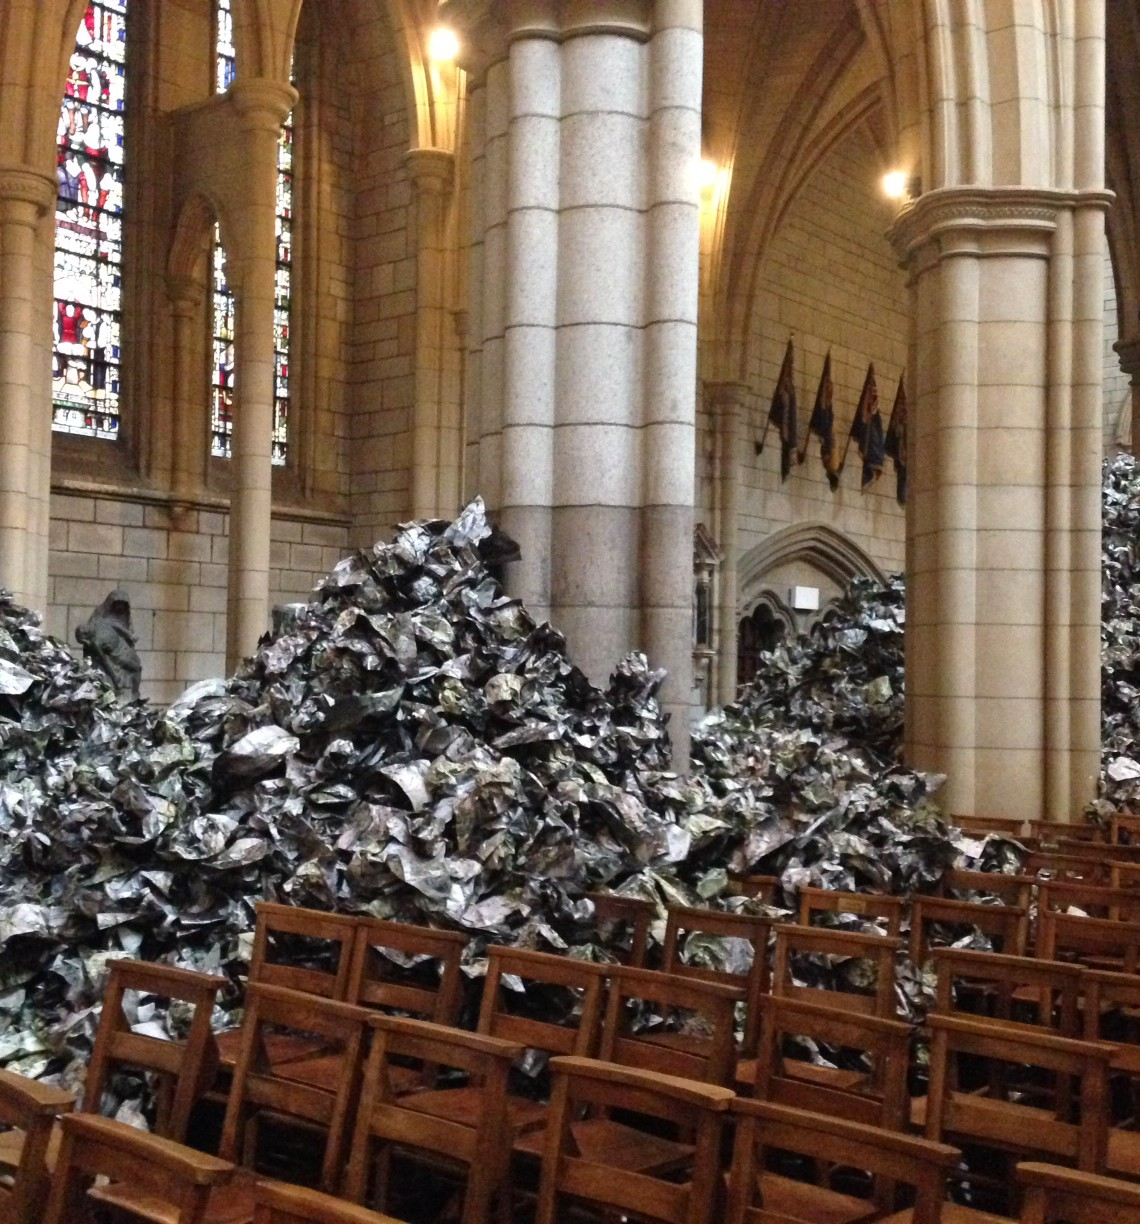 Part of the Imran Qureshi installation in Truro Cathedral